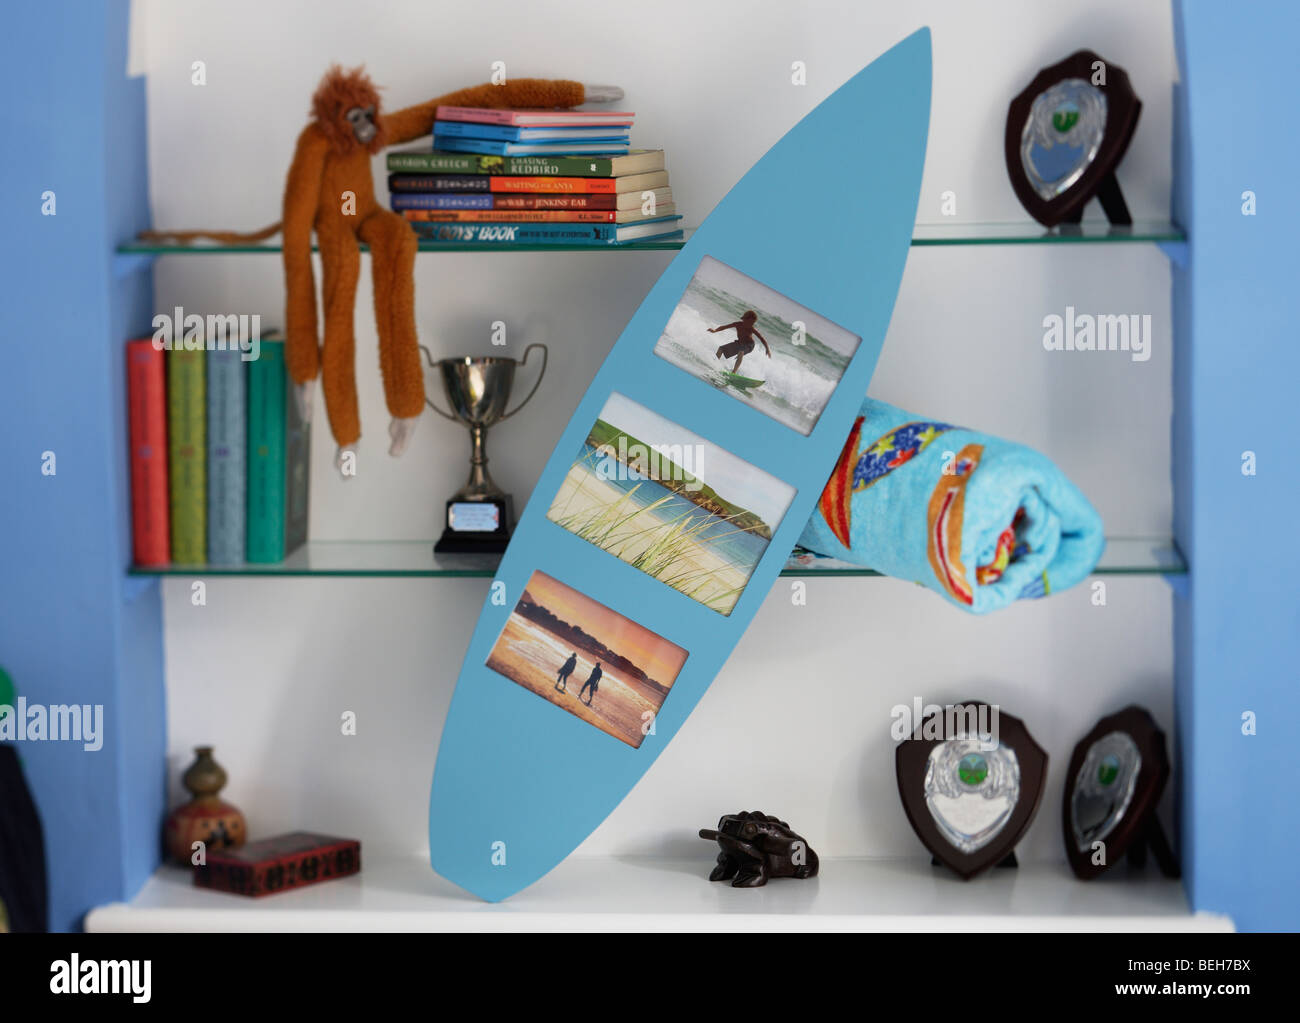 surfboard shaped photo frame in boys bedroom - Stock Image